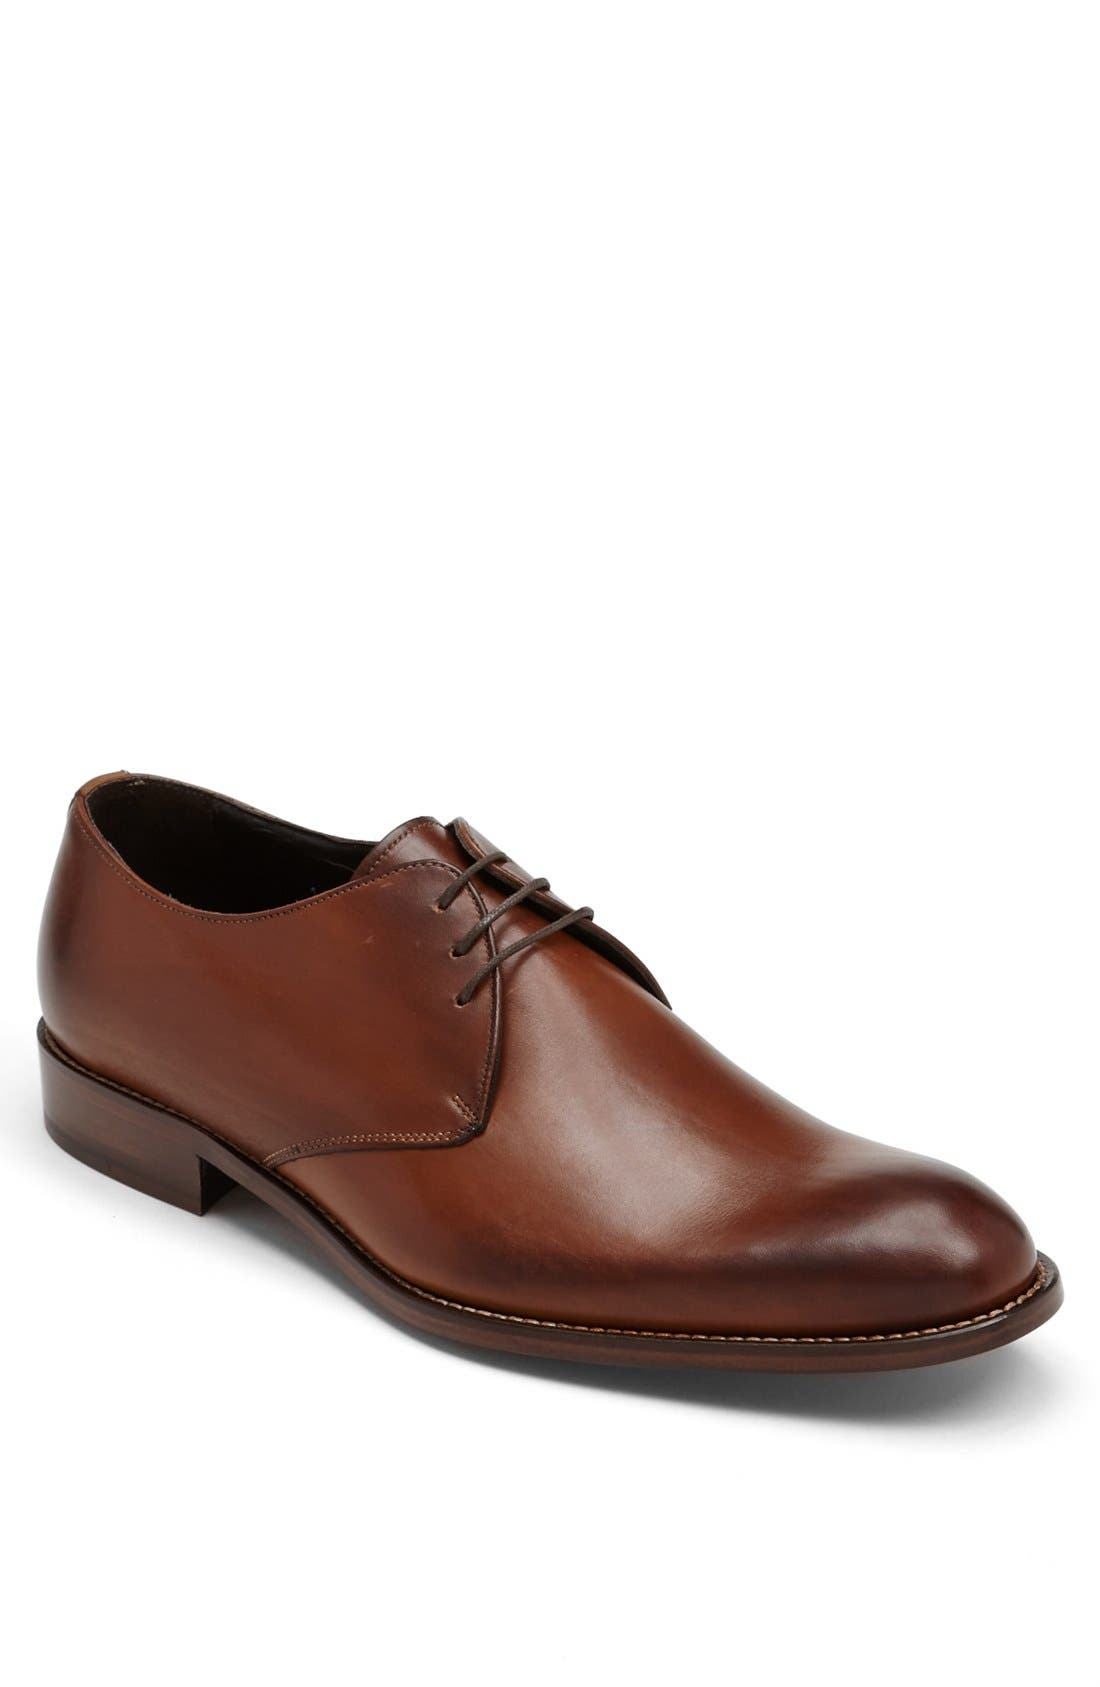 Alternate Image 1 Selected - To Boot New York 'Winston' Oxford